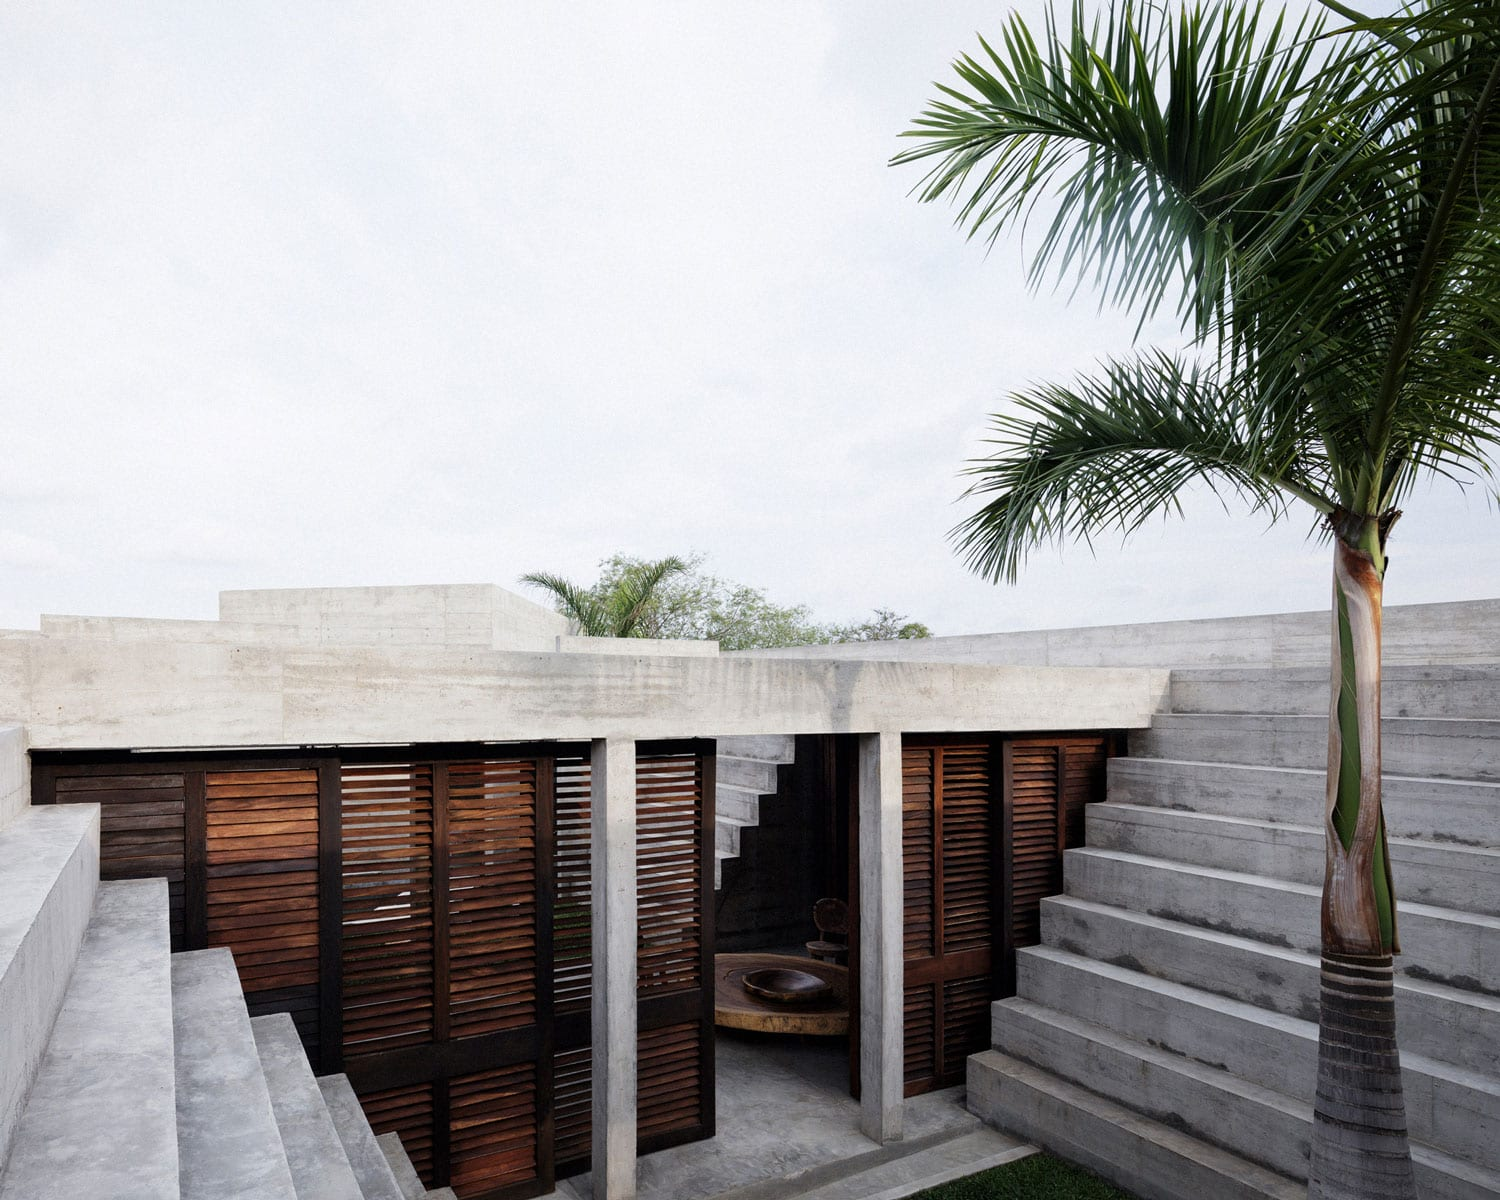 Open-Air Holiday Home in Zicatela Beach, Mexico by Ludwig Godefroy & Emmanuel Picault | Yellowtrace